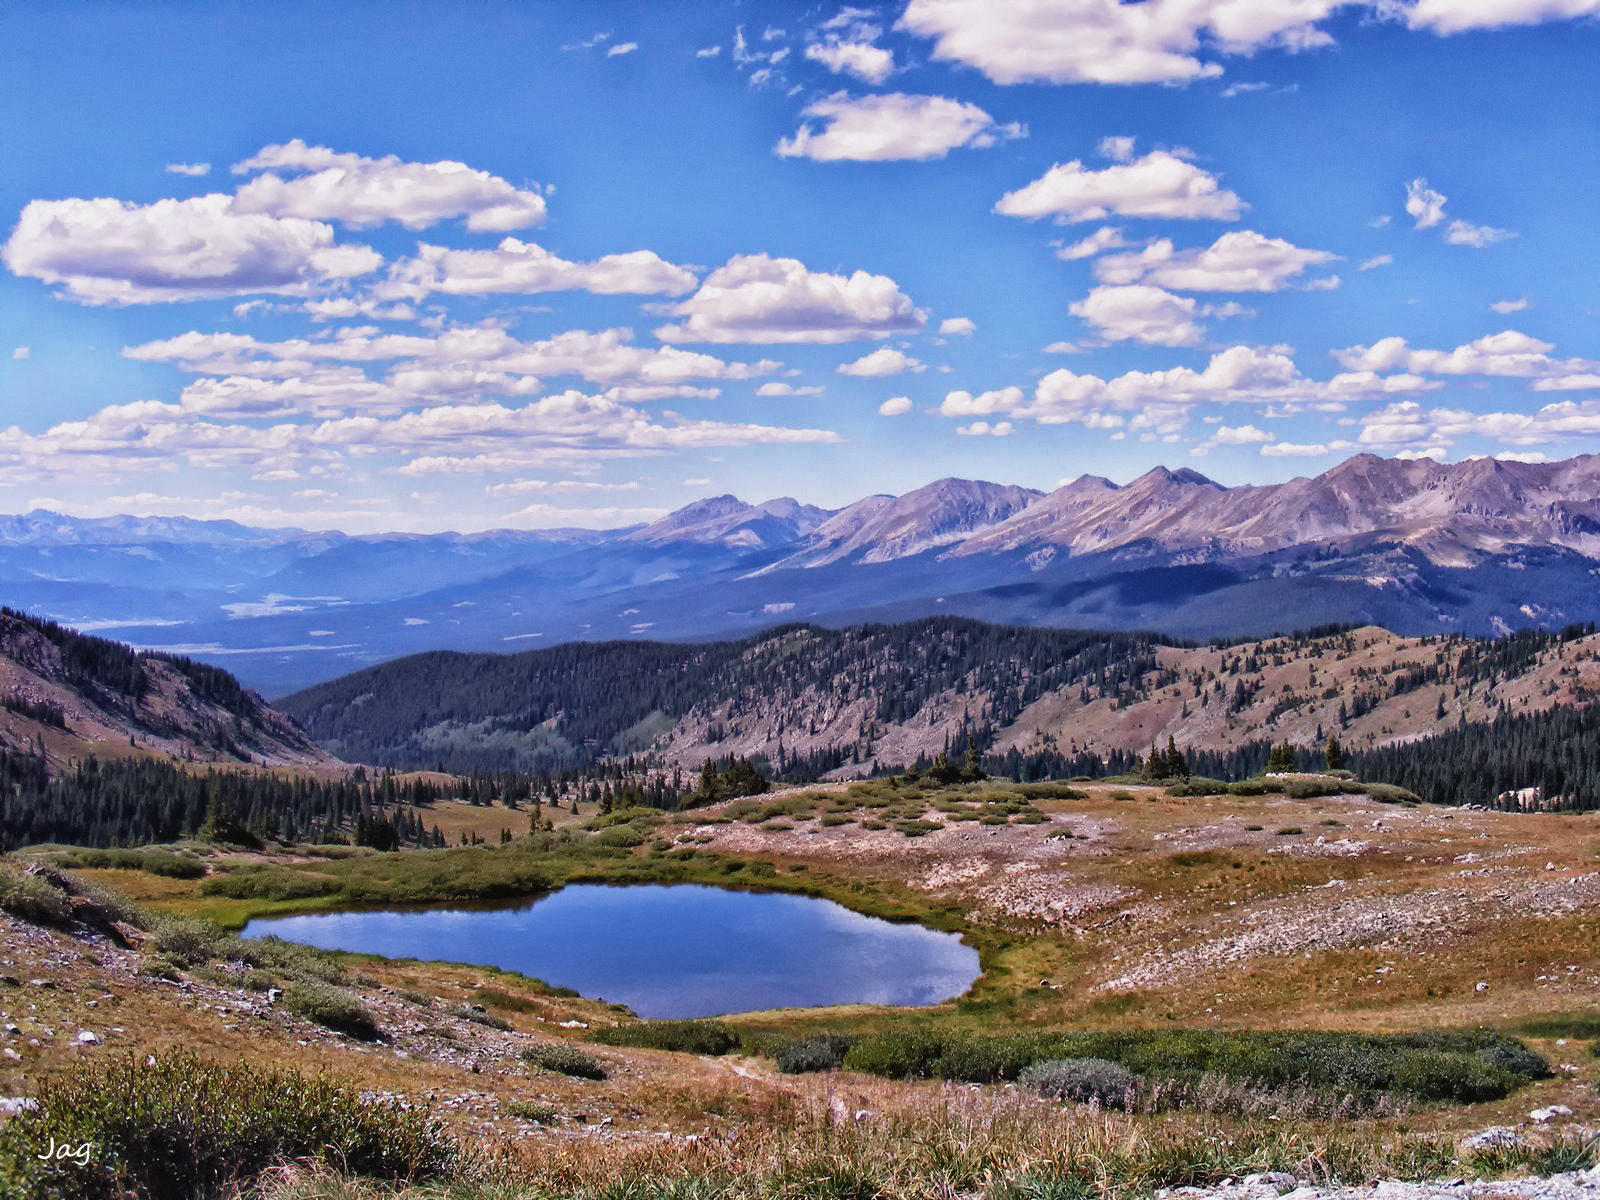 Photograph Colorado Rockies in August by James Gramm on 500px